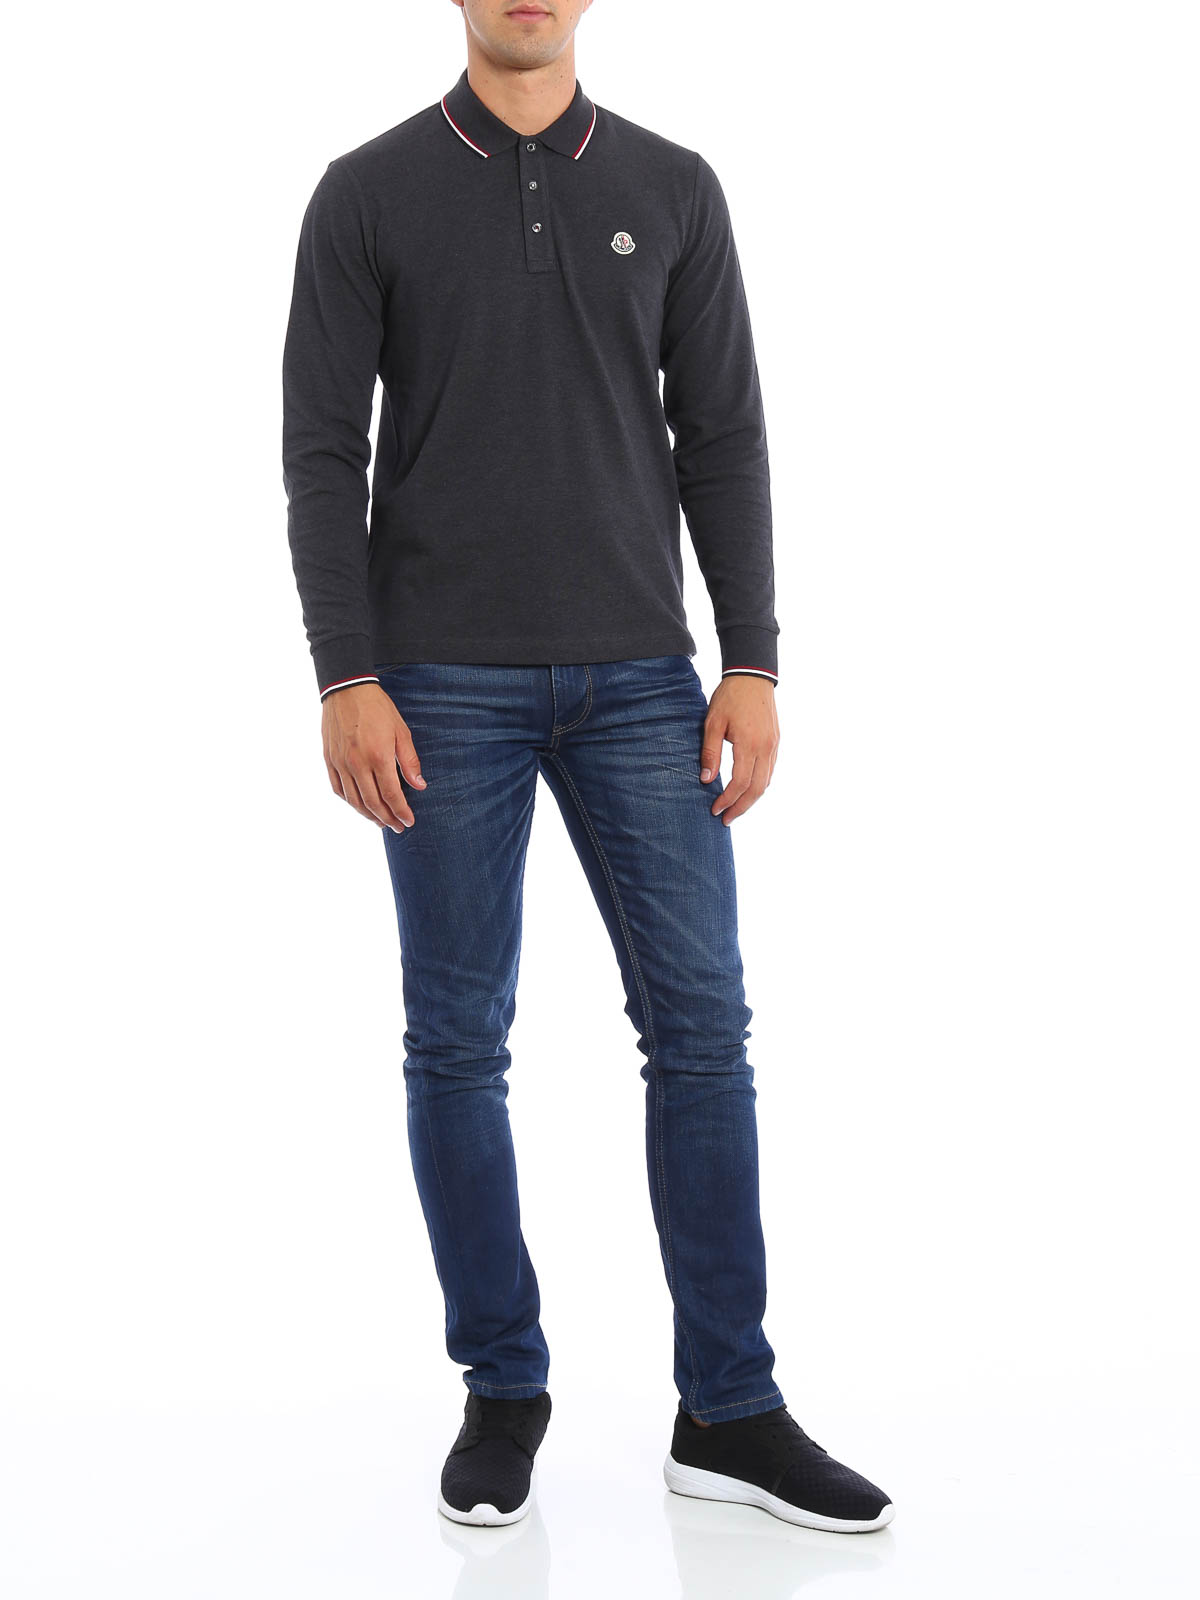 Find great deals on eBay for long sleeve cotton shirt. Shop with confidence.